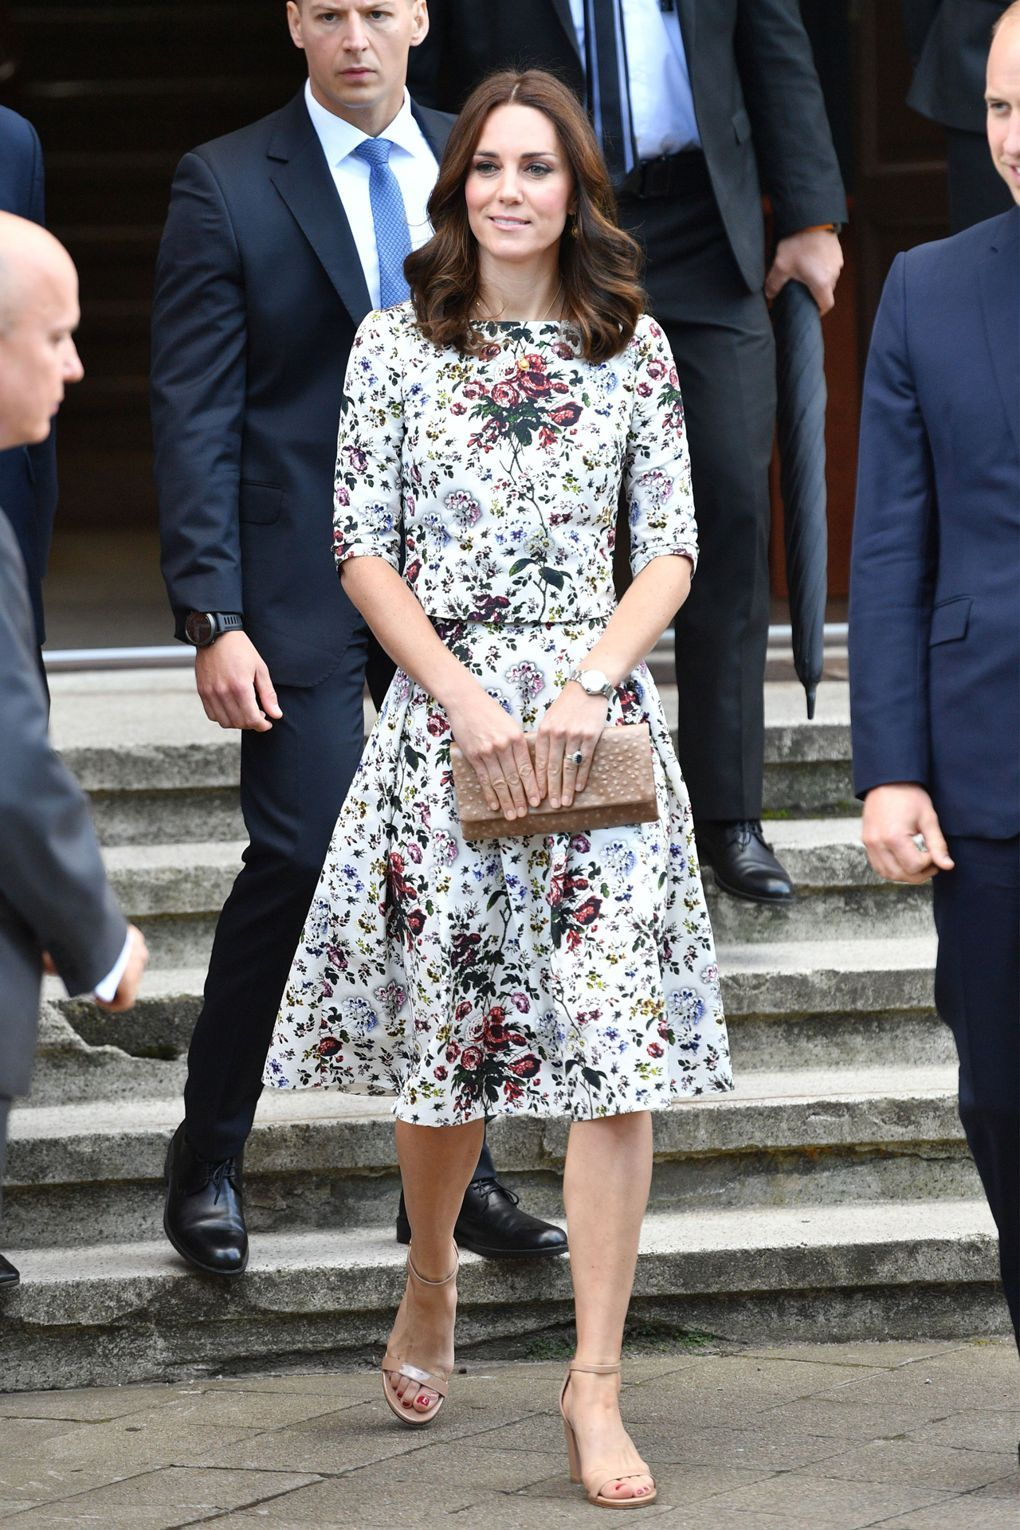 On day two of the royal tour in Poland, she wore a floral Erdem dress to meet Holocaust survivors at a former Nazi concentration camp in Gdansk.